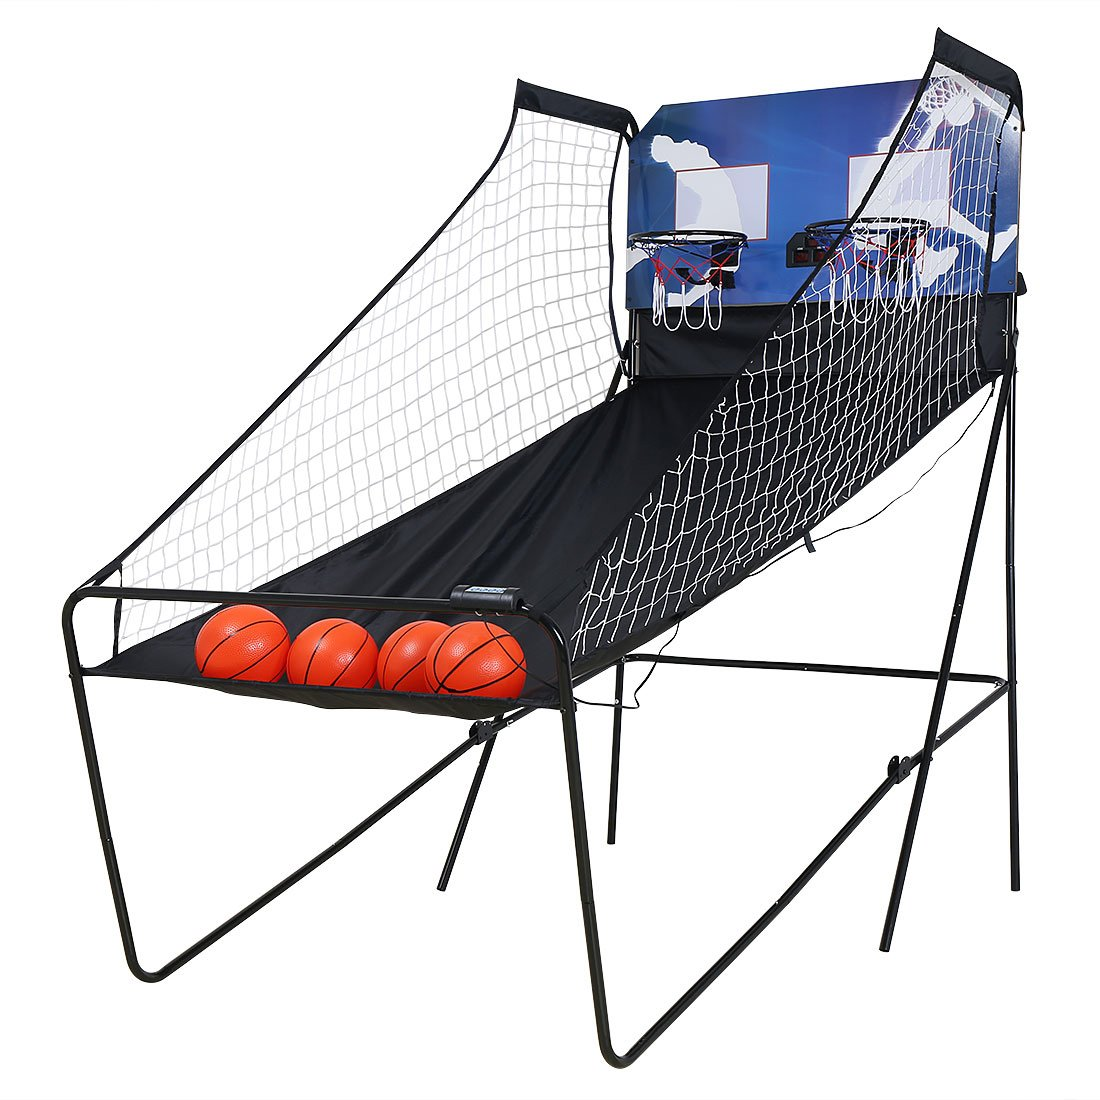 Foldable Double Arcade Electronic Basketball Game Double Electronic Hoops Shot For 2 Players with LED Scoring System